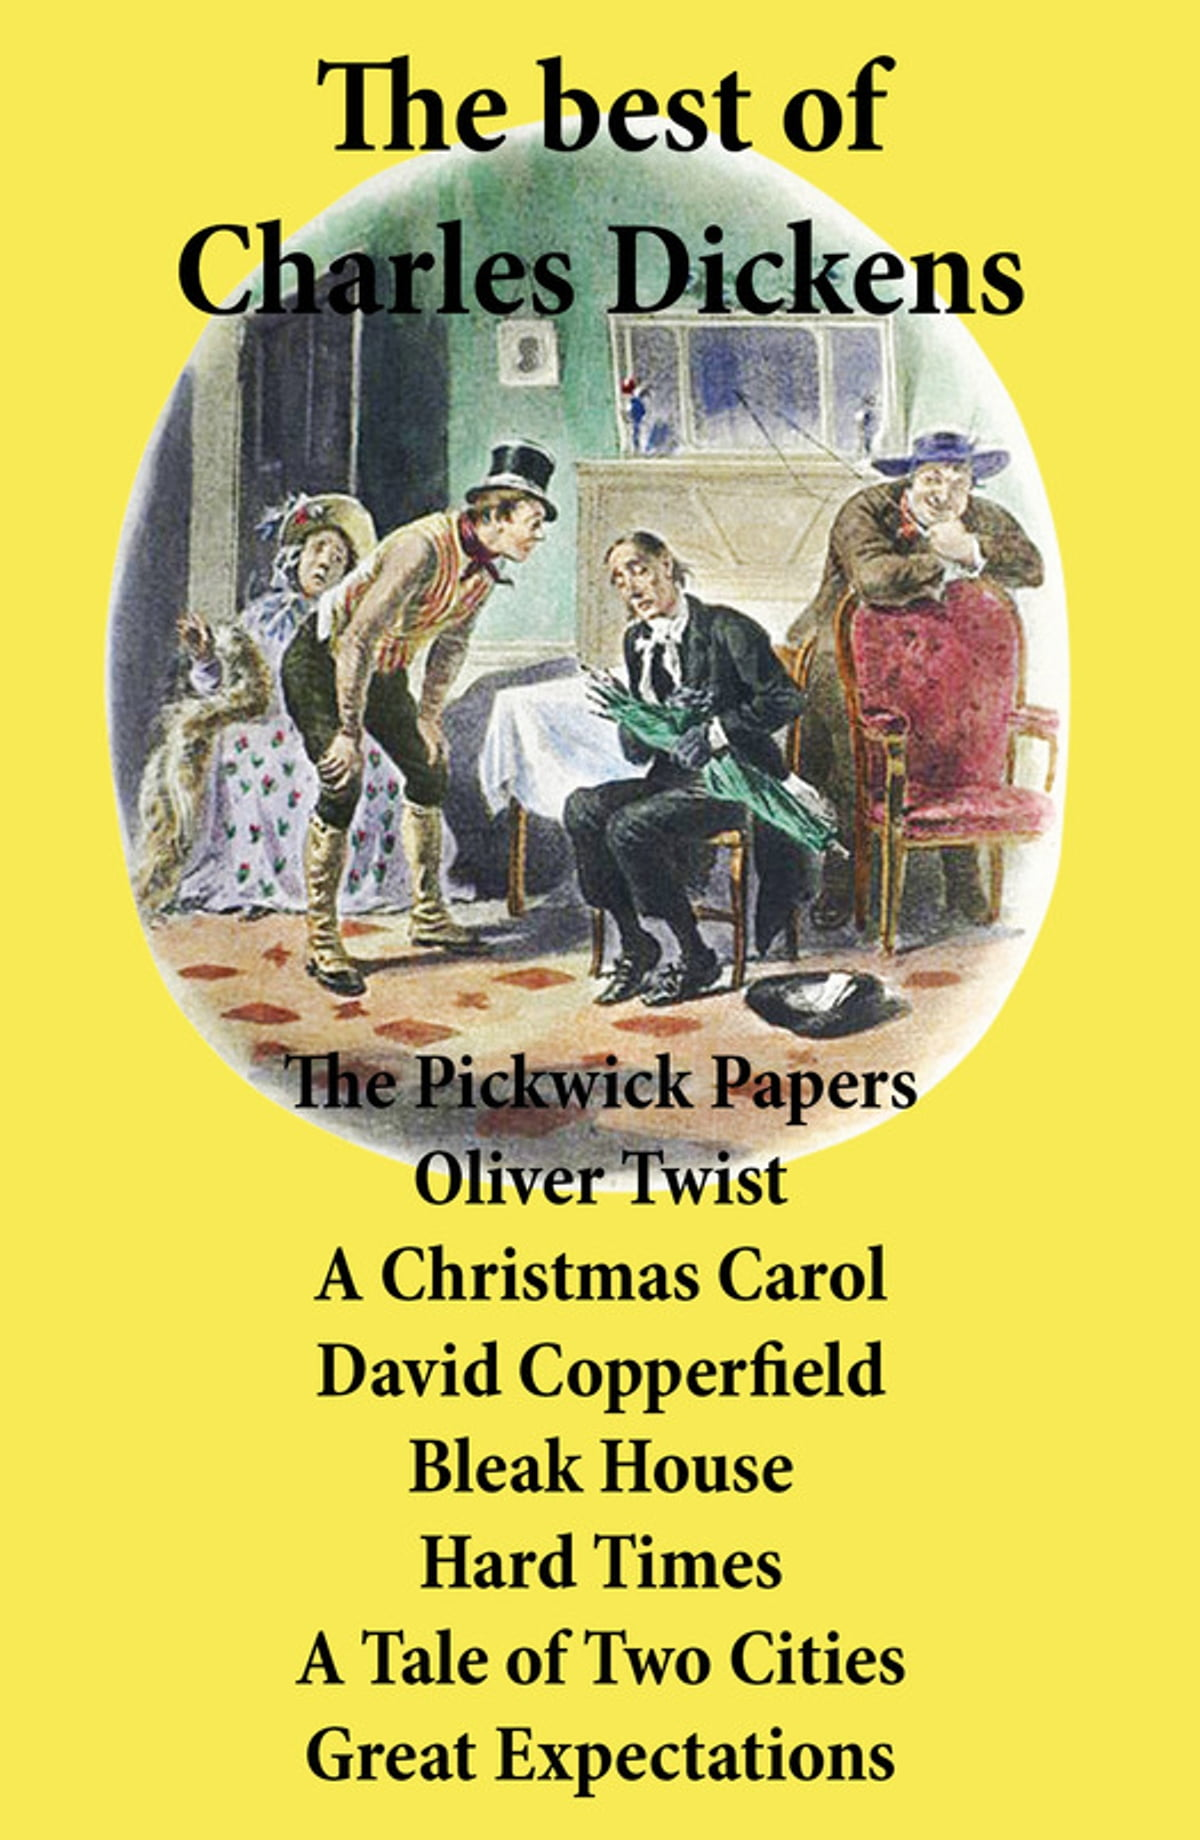 the best of charles dickens the pickwick papers oliver twist a the best of charles dickens the pickwick papers oliver twist a christmas carol david copperfield bleak house hard times a tale of two cities